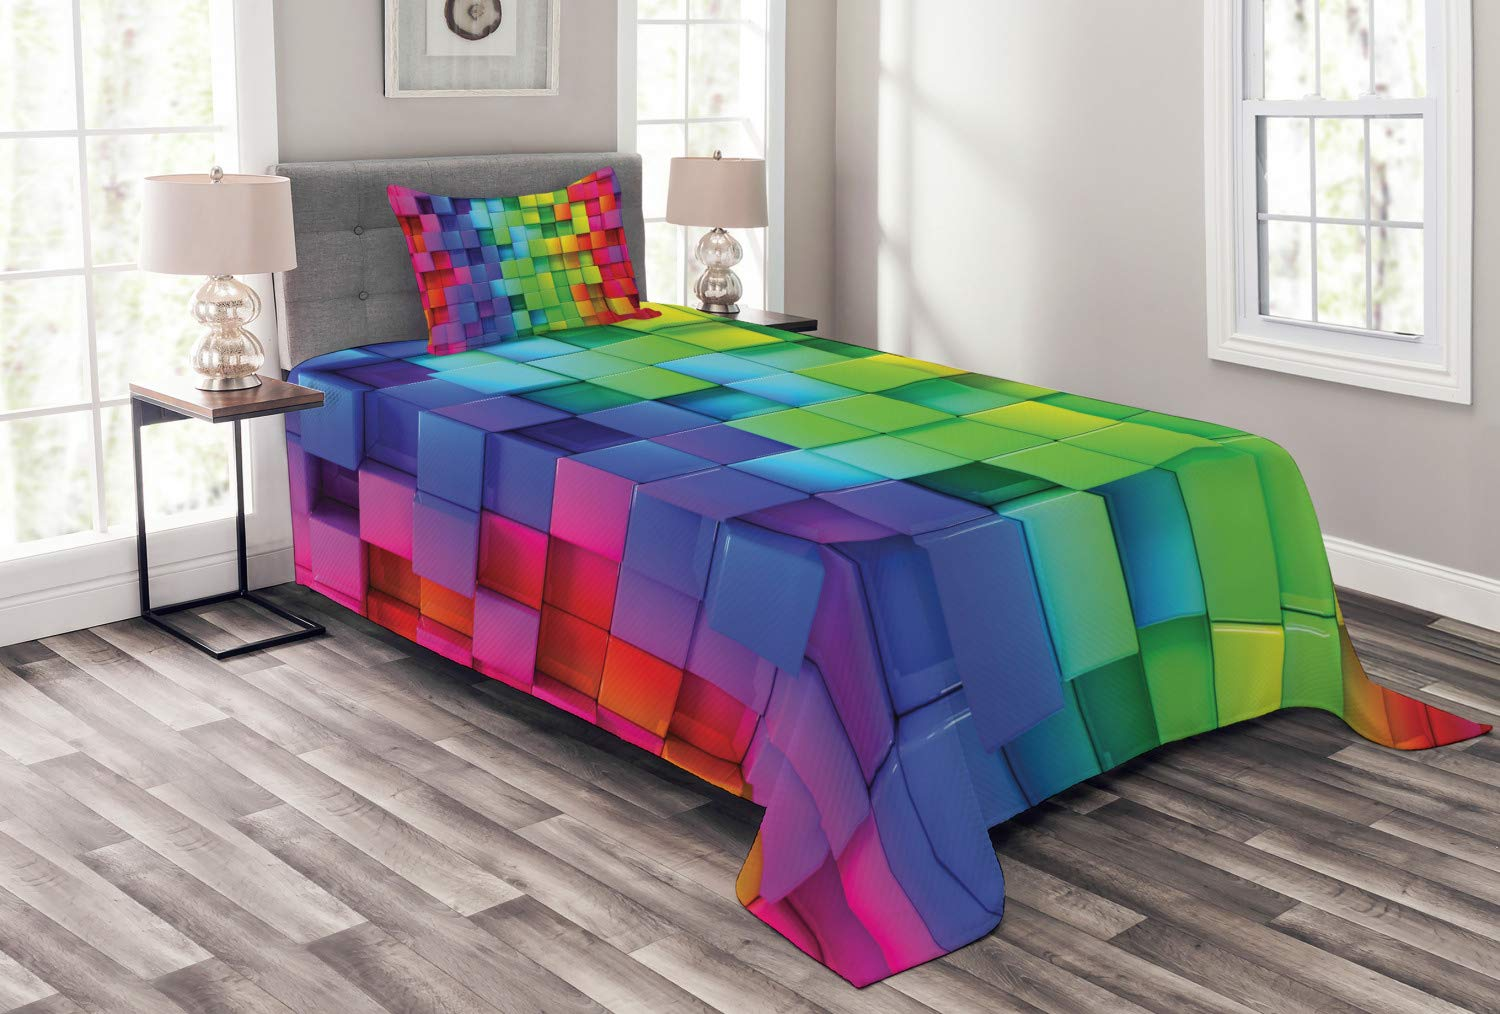 Multicolor Ambesonne Colorful Bedspread Set Twin Size Rainbow Colored Contour Display Futuristic Block Brick-Like Geometric Artisan 2 Piece Decorative Quilted Coverlet with 1 Pillow Sham